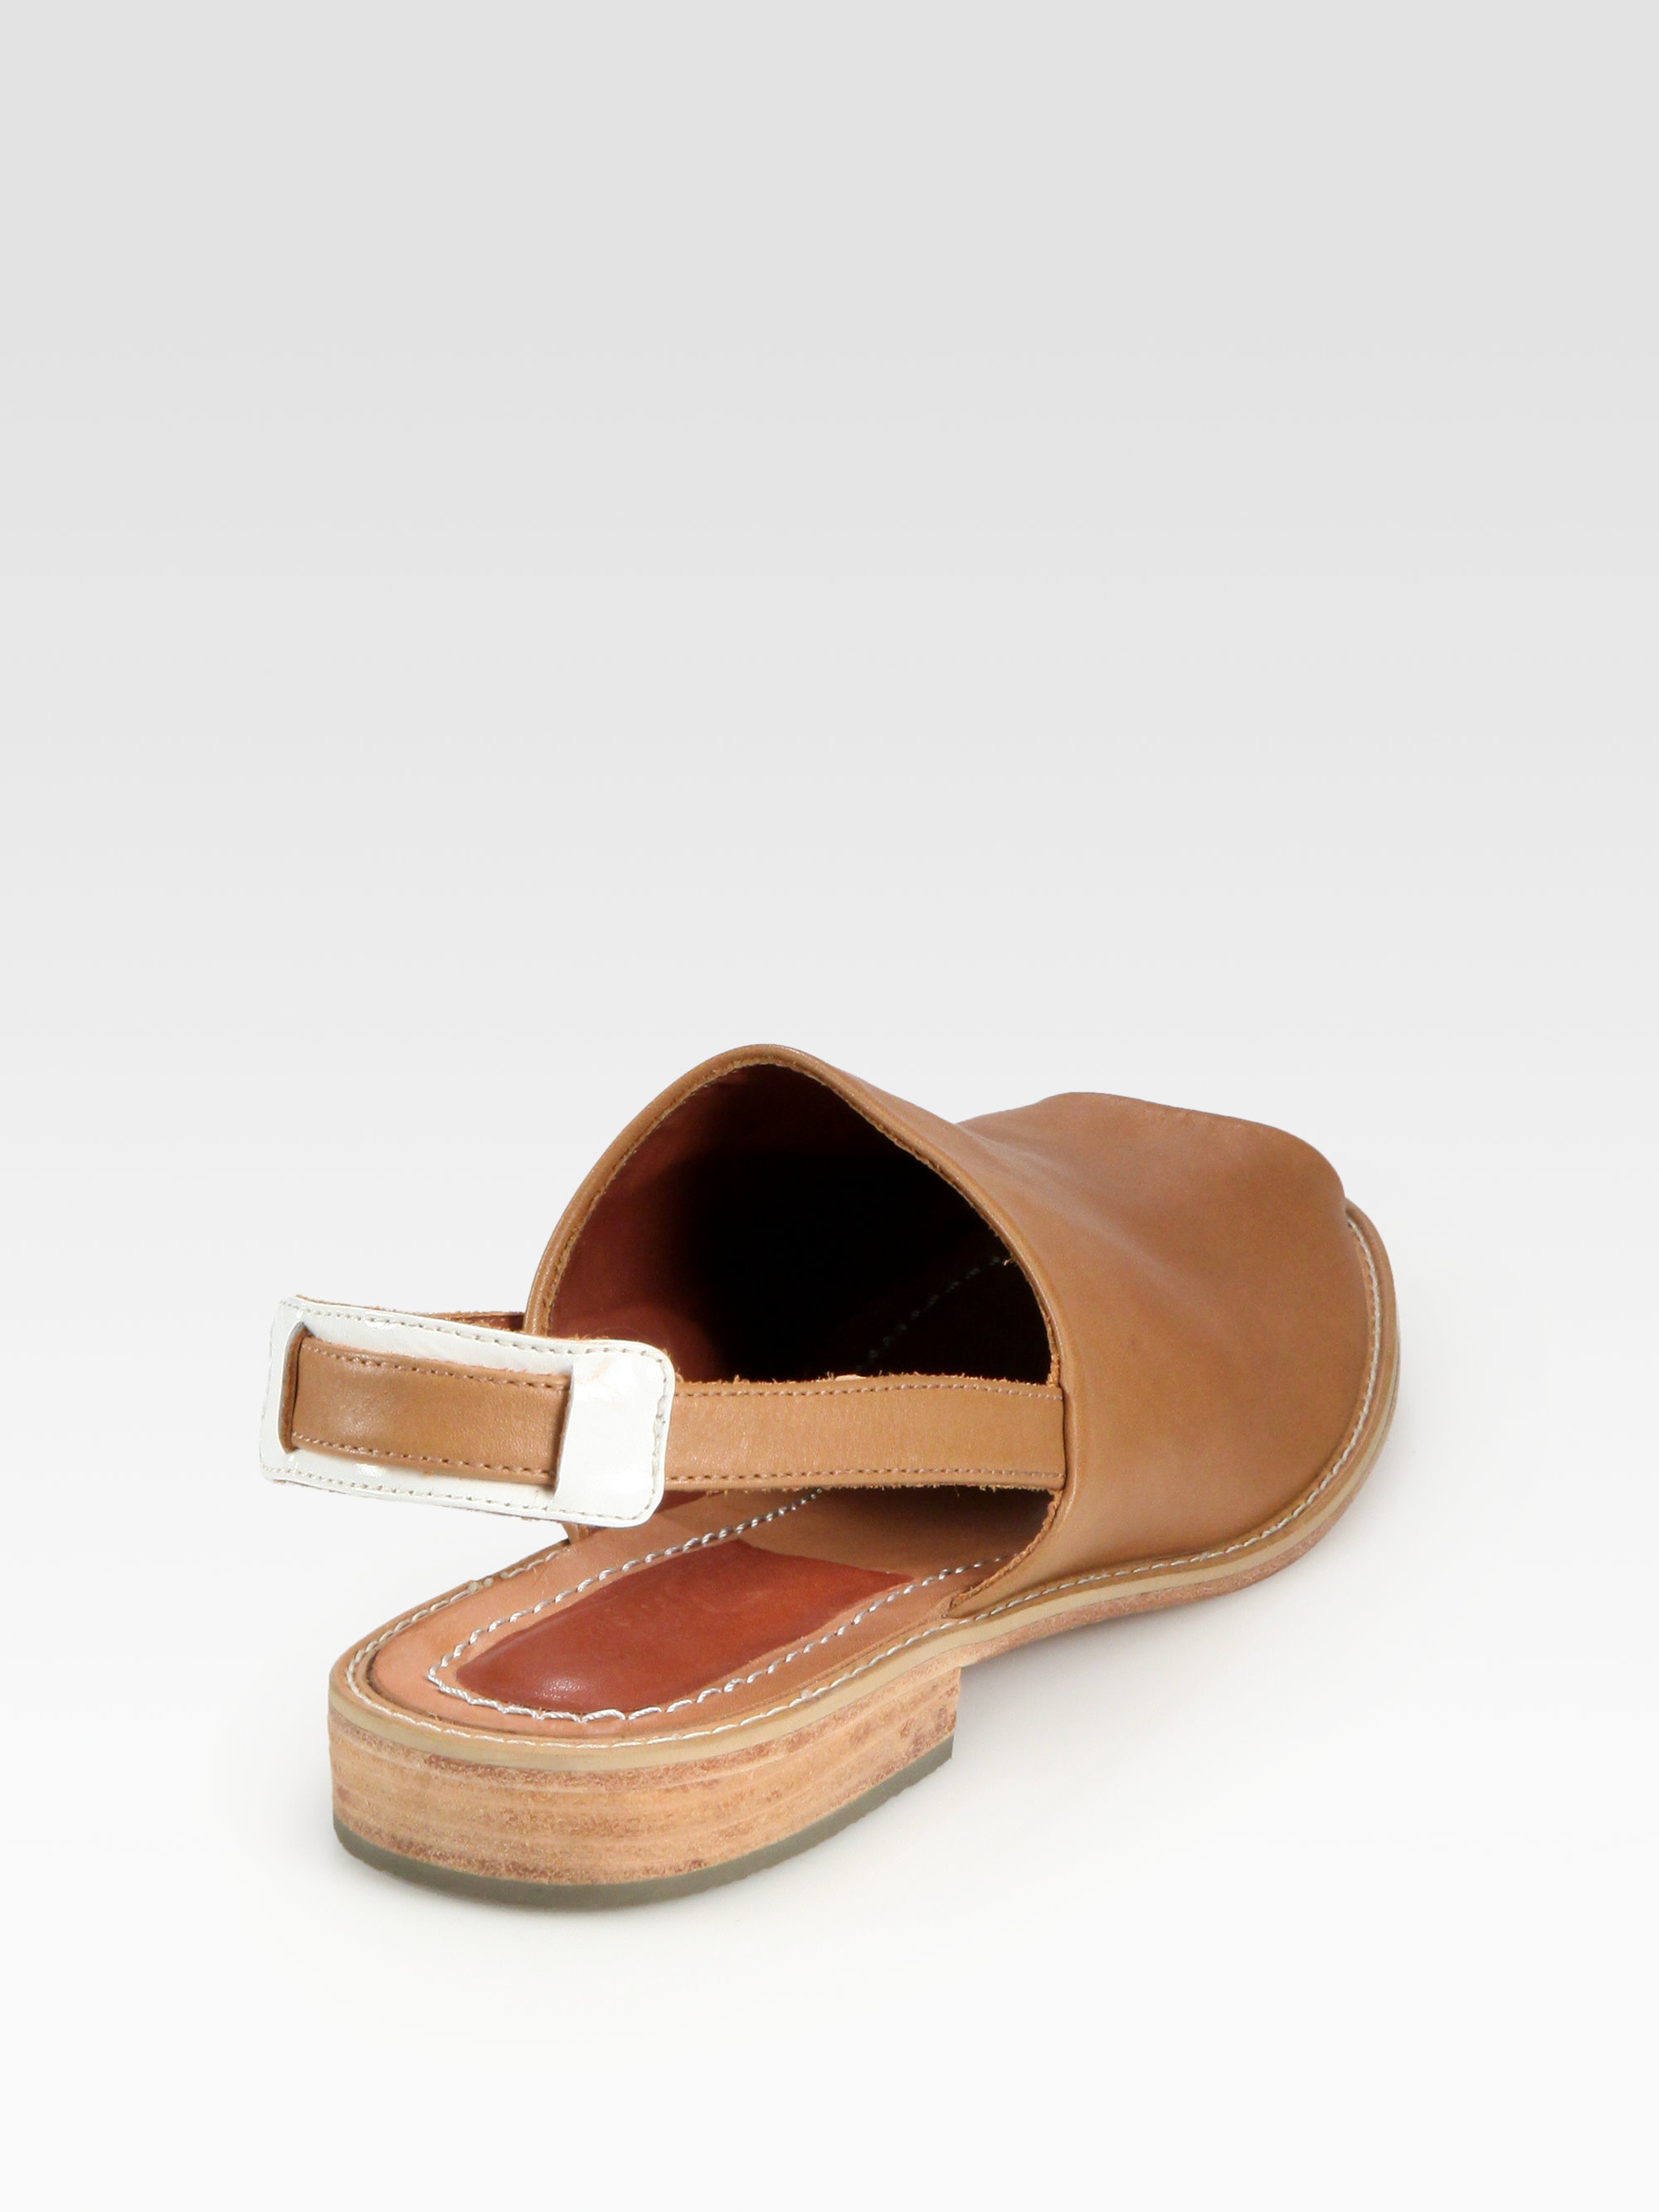 7c8e9bd8d Lyst - Rachel Comey Persea Leather Slingback Sandals in Brown